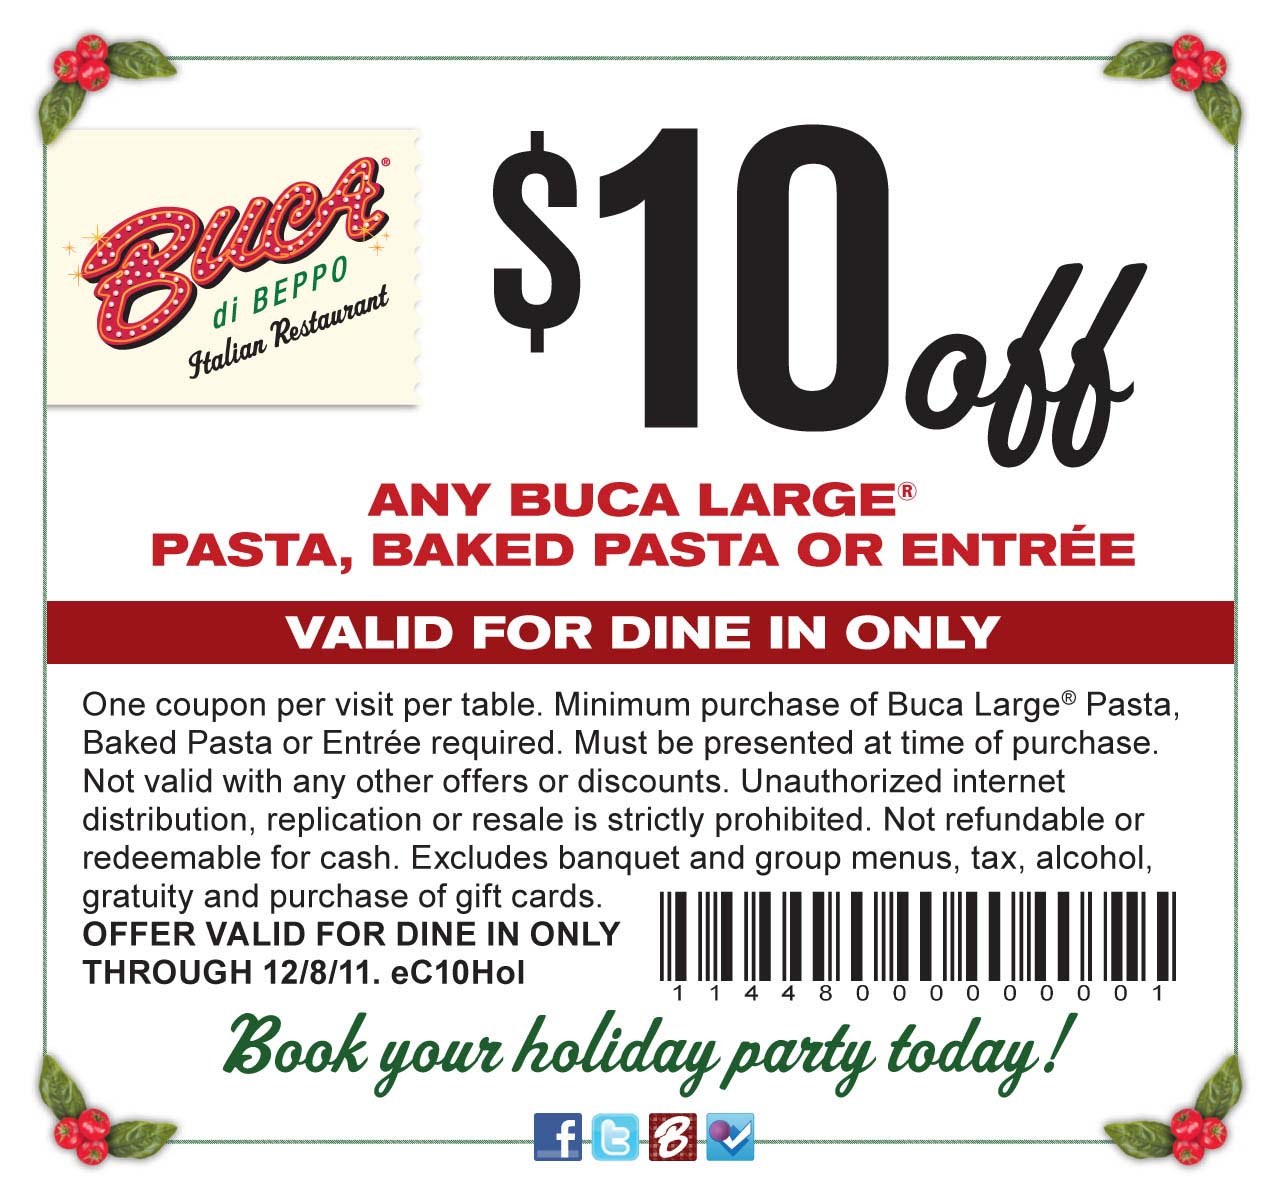 photograph about Buca Di Beppo Coupons Printable identify Buca di beppo 4 for 40 coupon - Vet medical center el paso tx